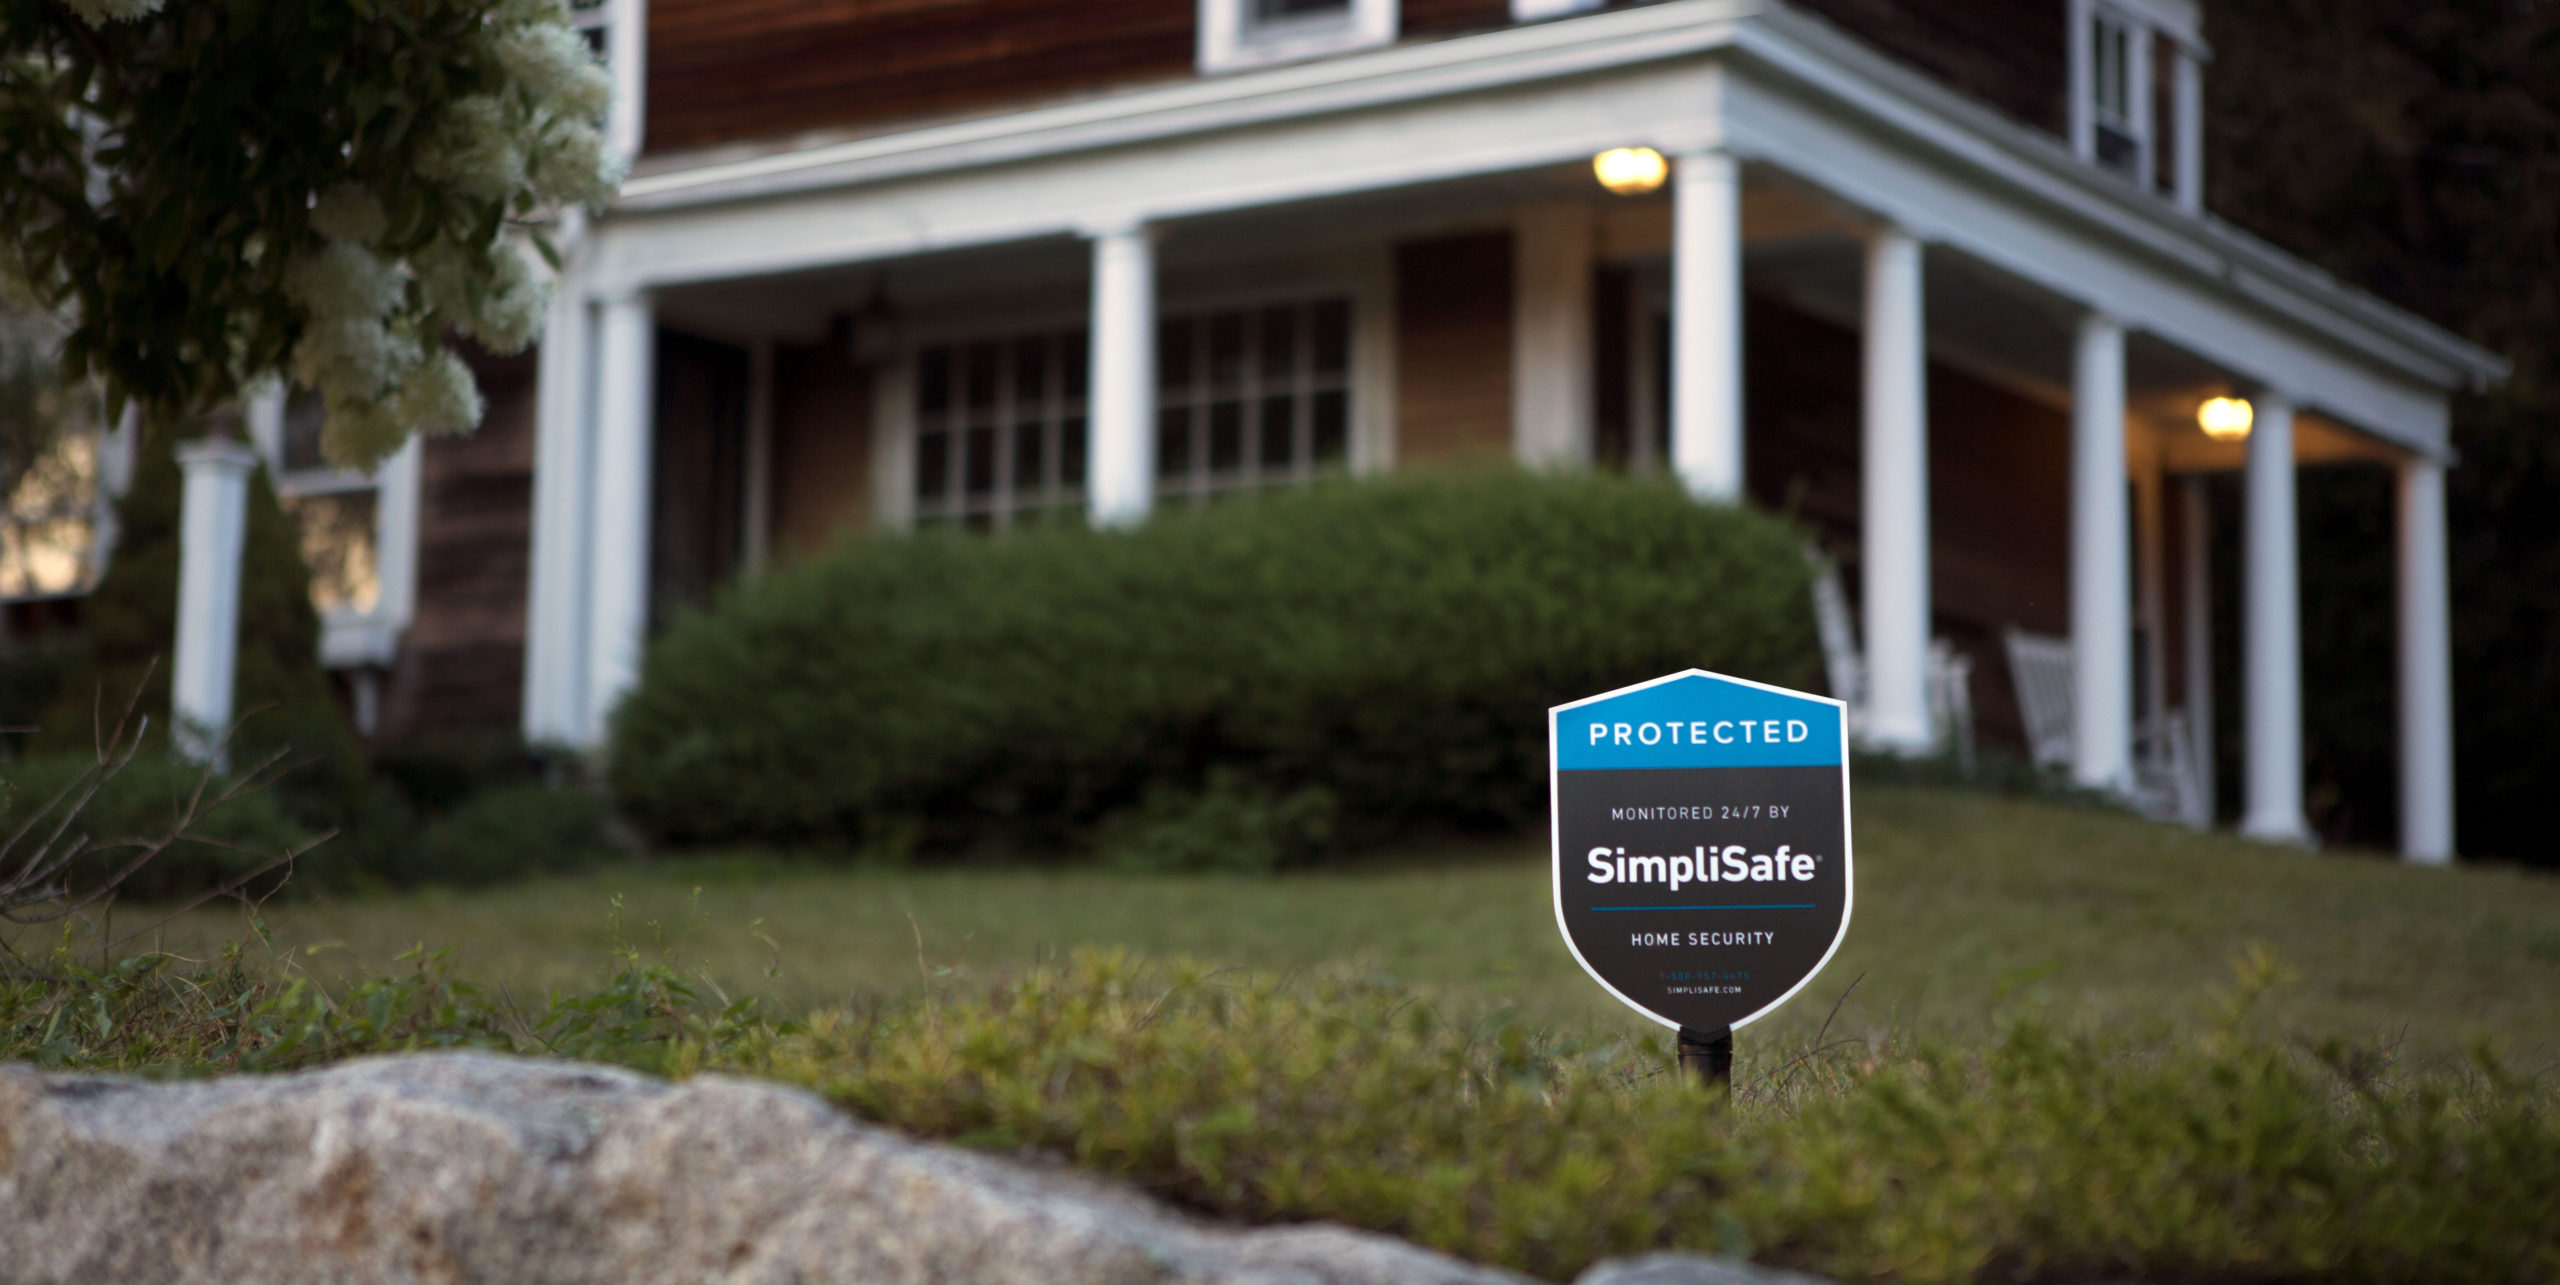 betting odds explained simplisafe home security